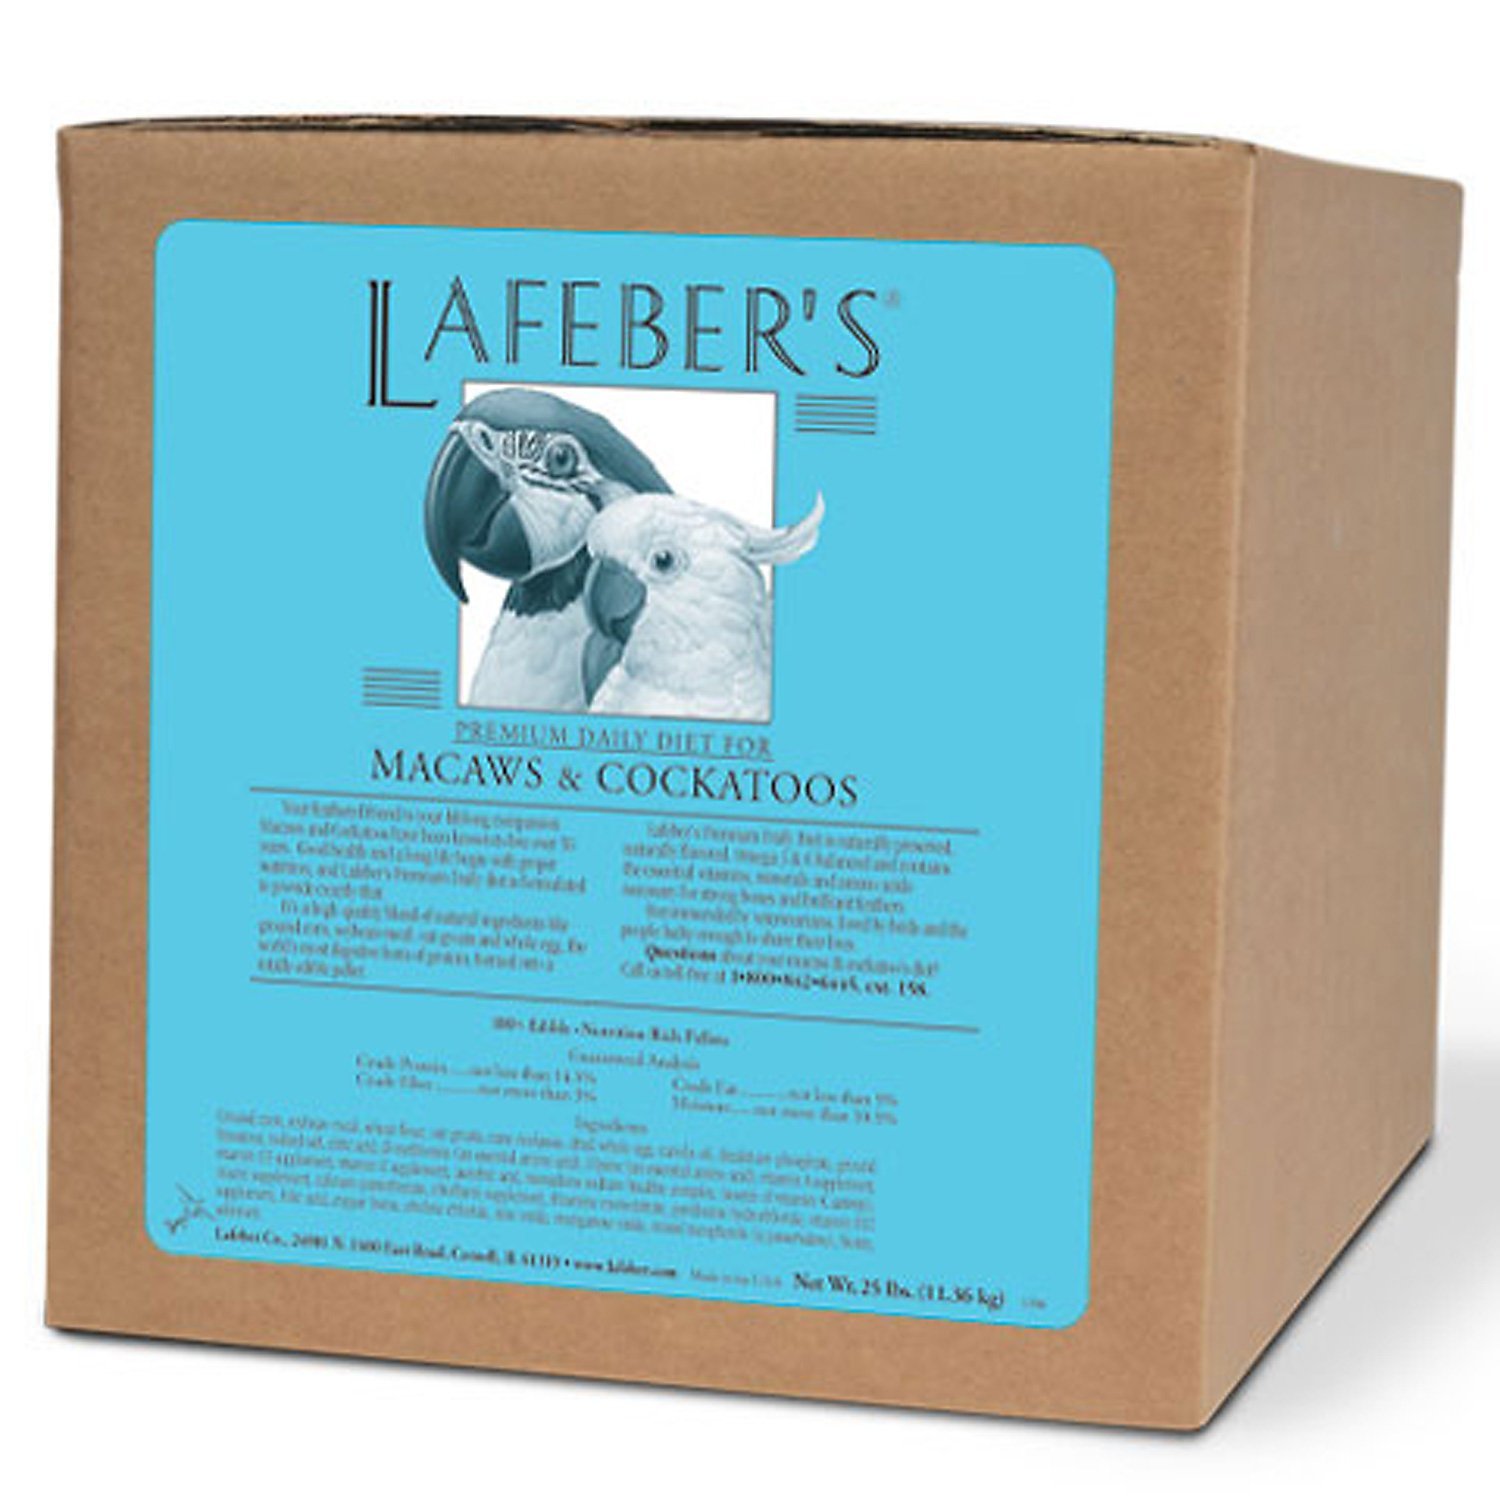 LAFEBER'S Premium Daily Diet Pellets Pet Bird Food, Made with Non-GMO and Human-Grade Ingredients, for Macaws and Cockatoos, 25 lbs by LAFEBER'S